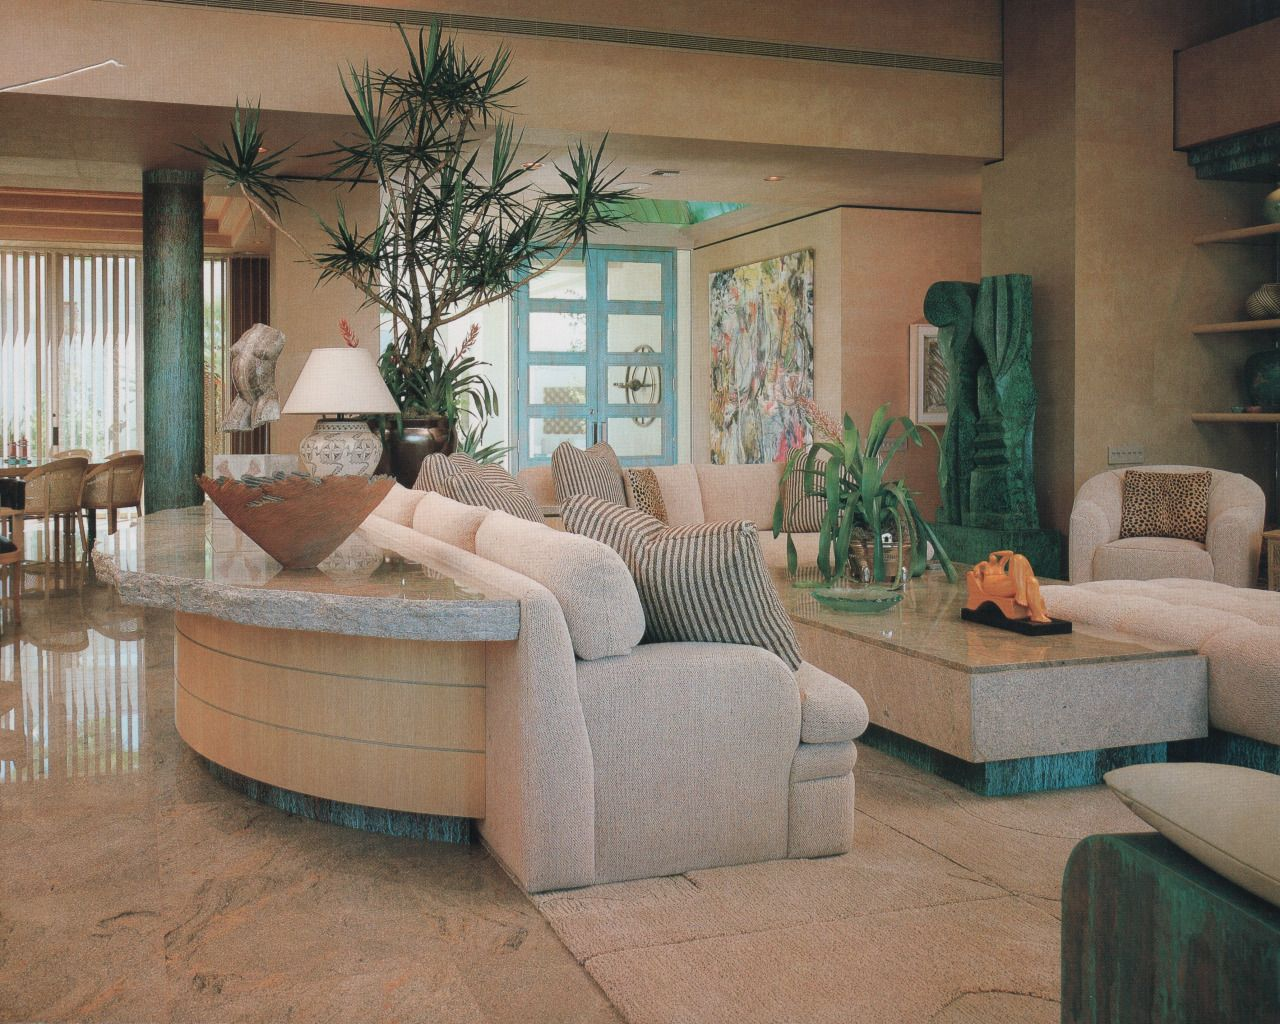 From Showcase Of Interior Design Pacific Edition 1992 With